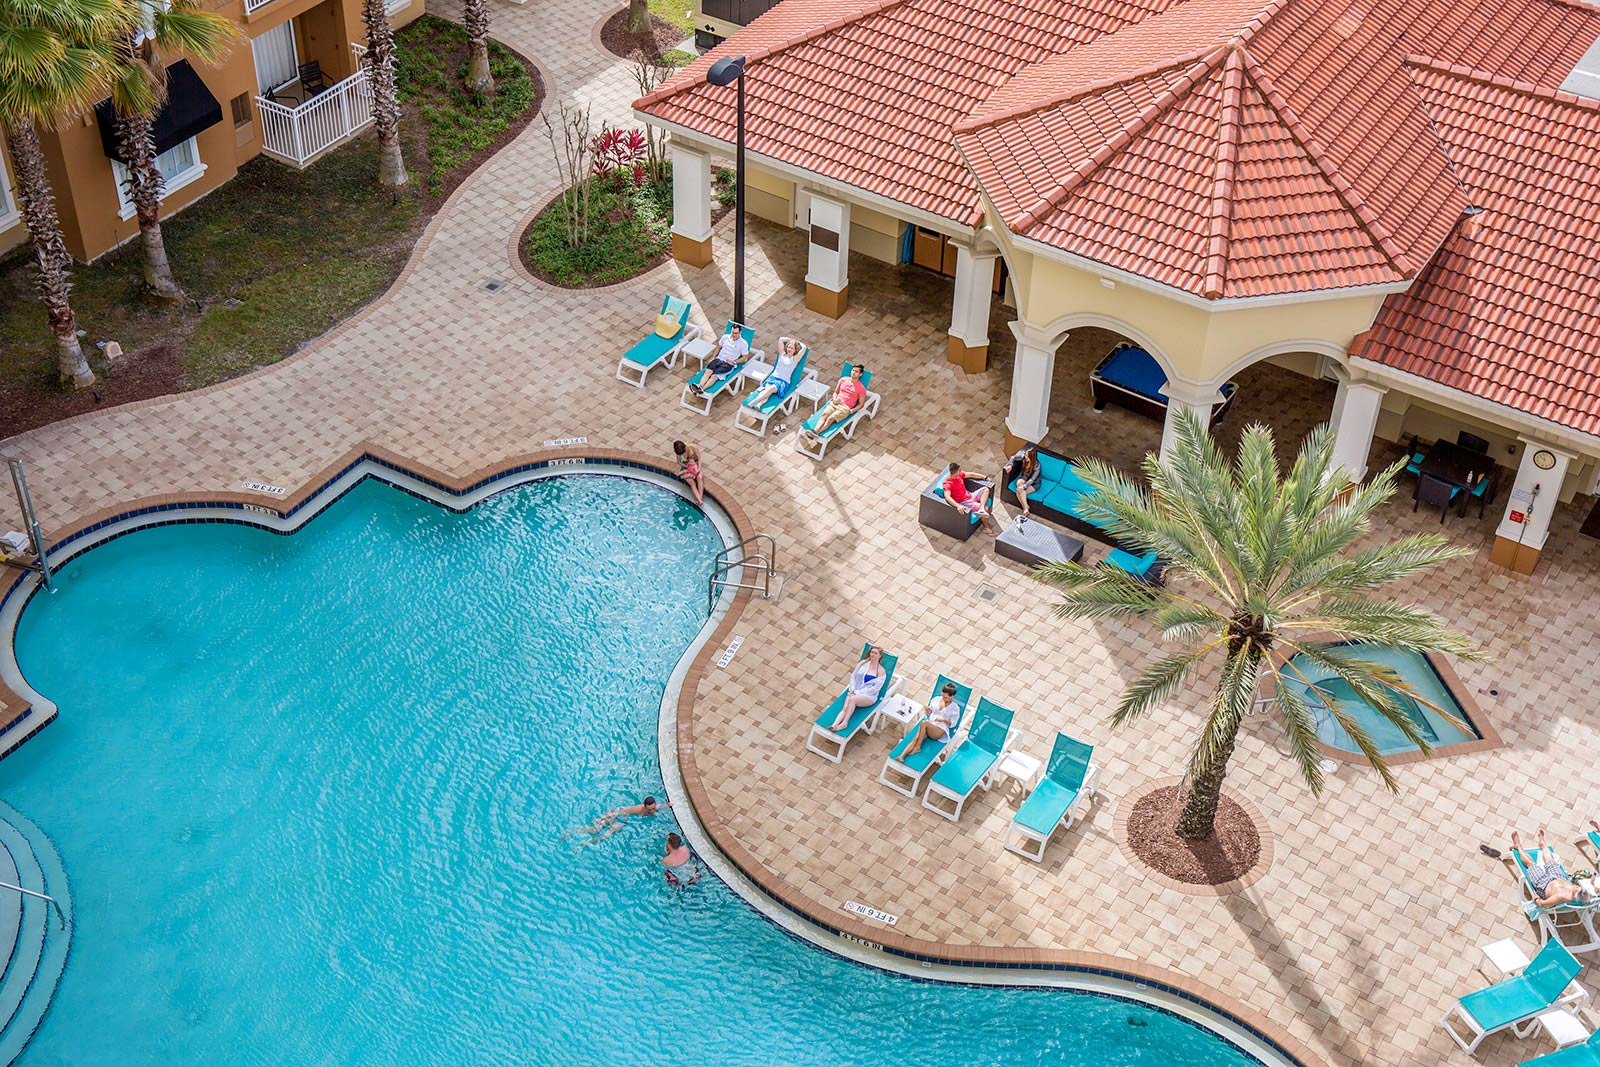 Overhead view of The Point pool in Orlando